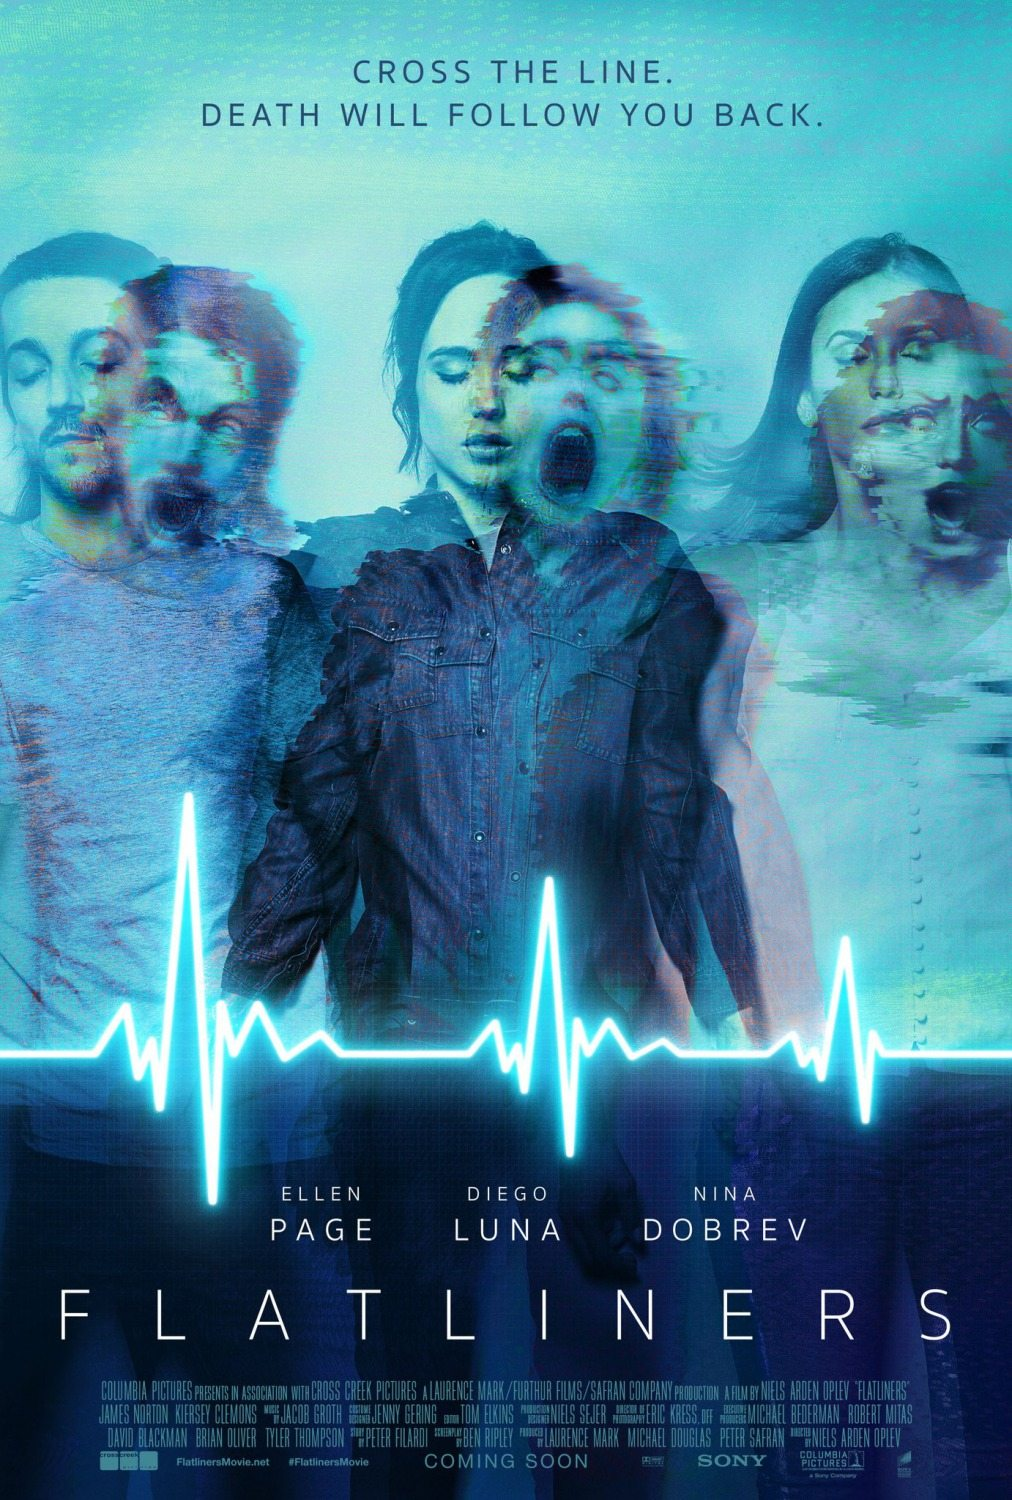 Flatliners poster 2 - Flatliners - A Pair of Posters to Keep Your Heart Beating